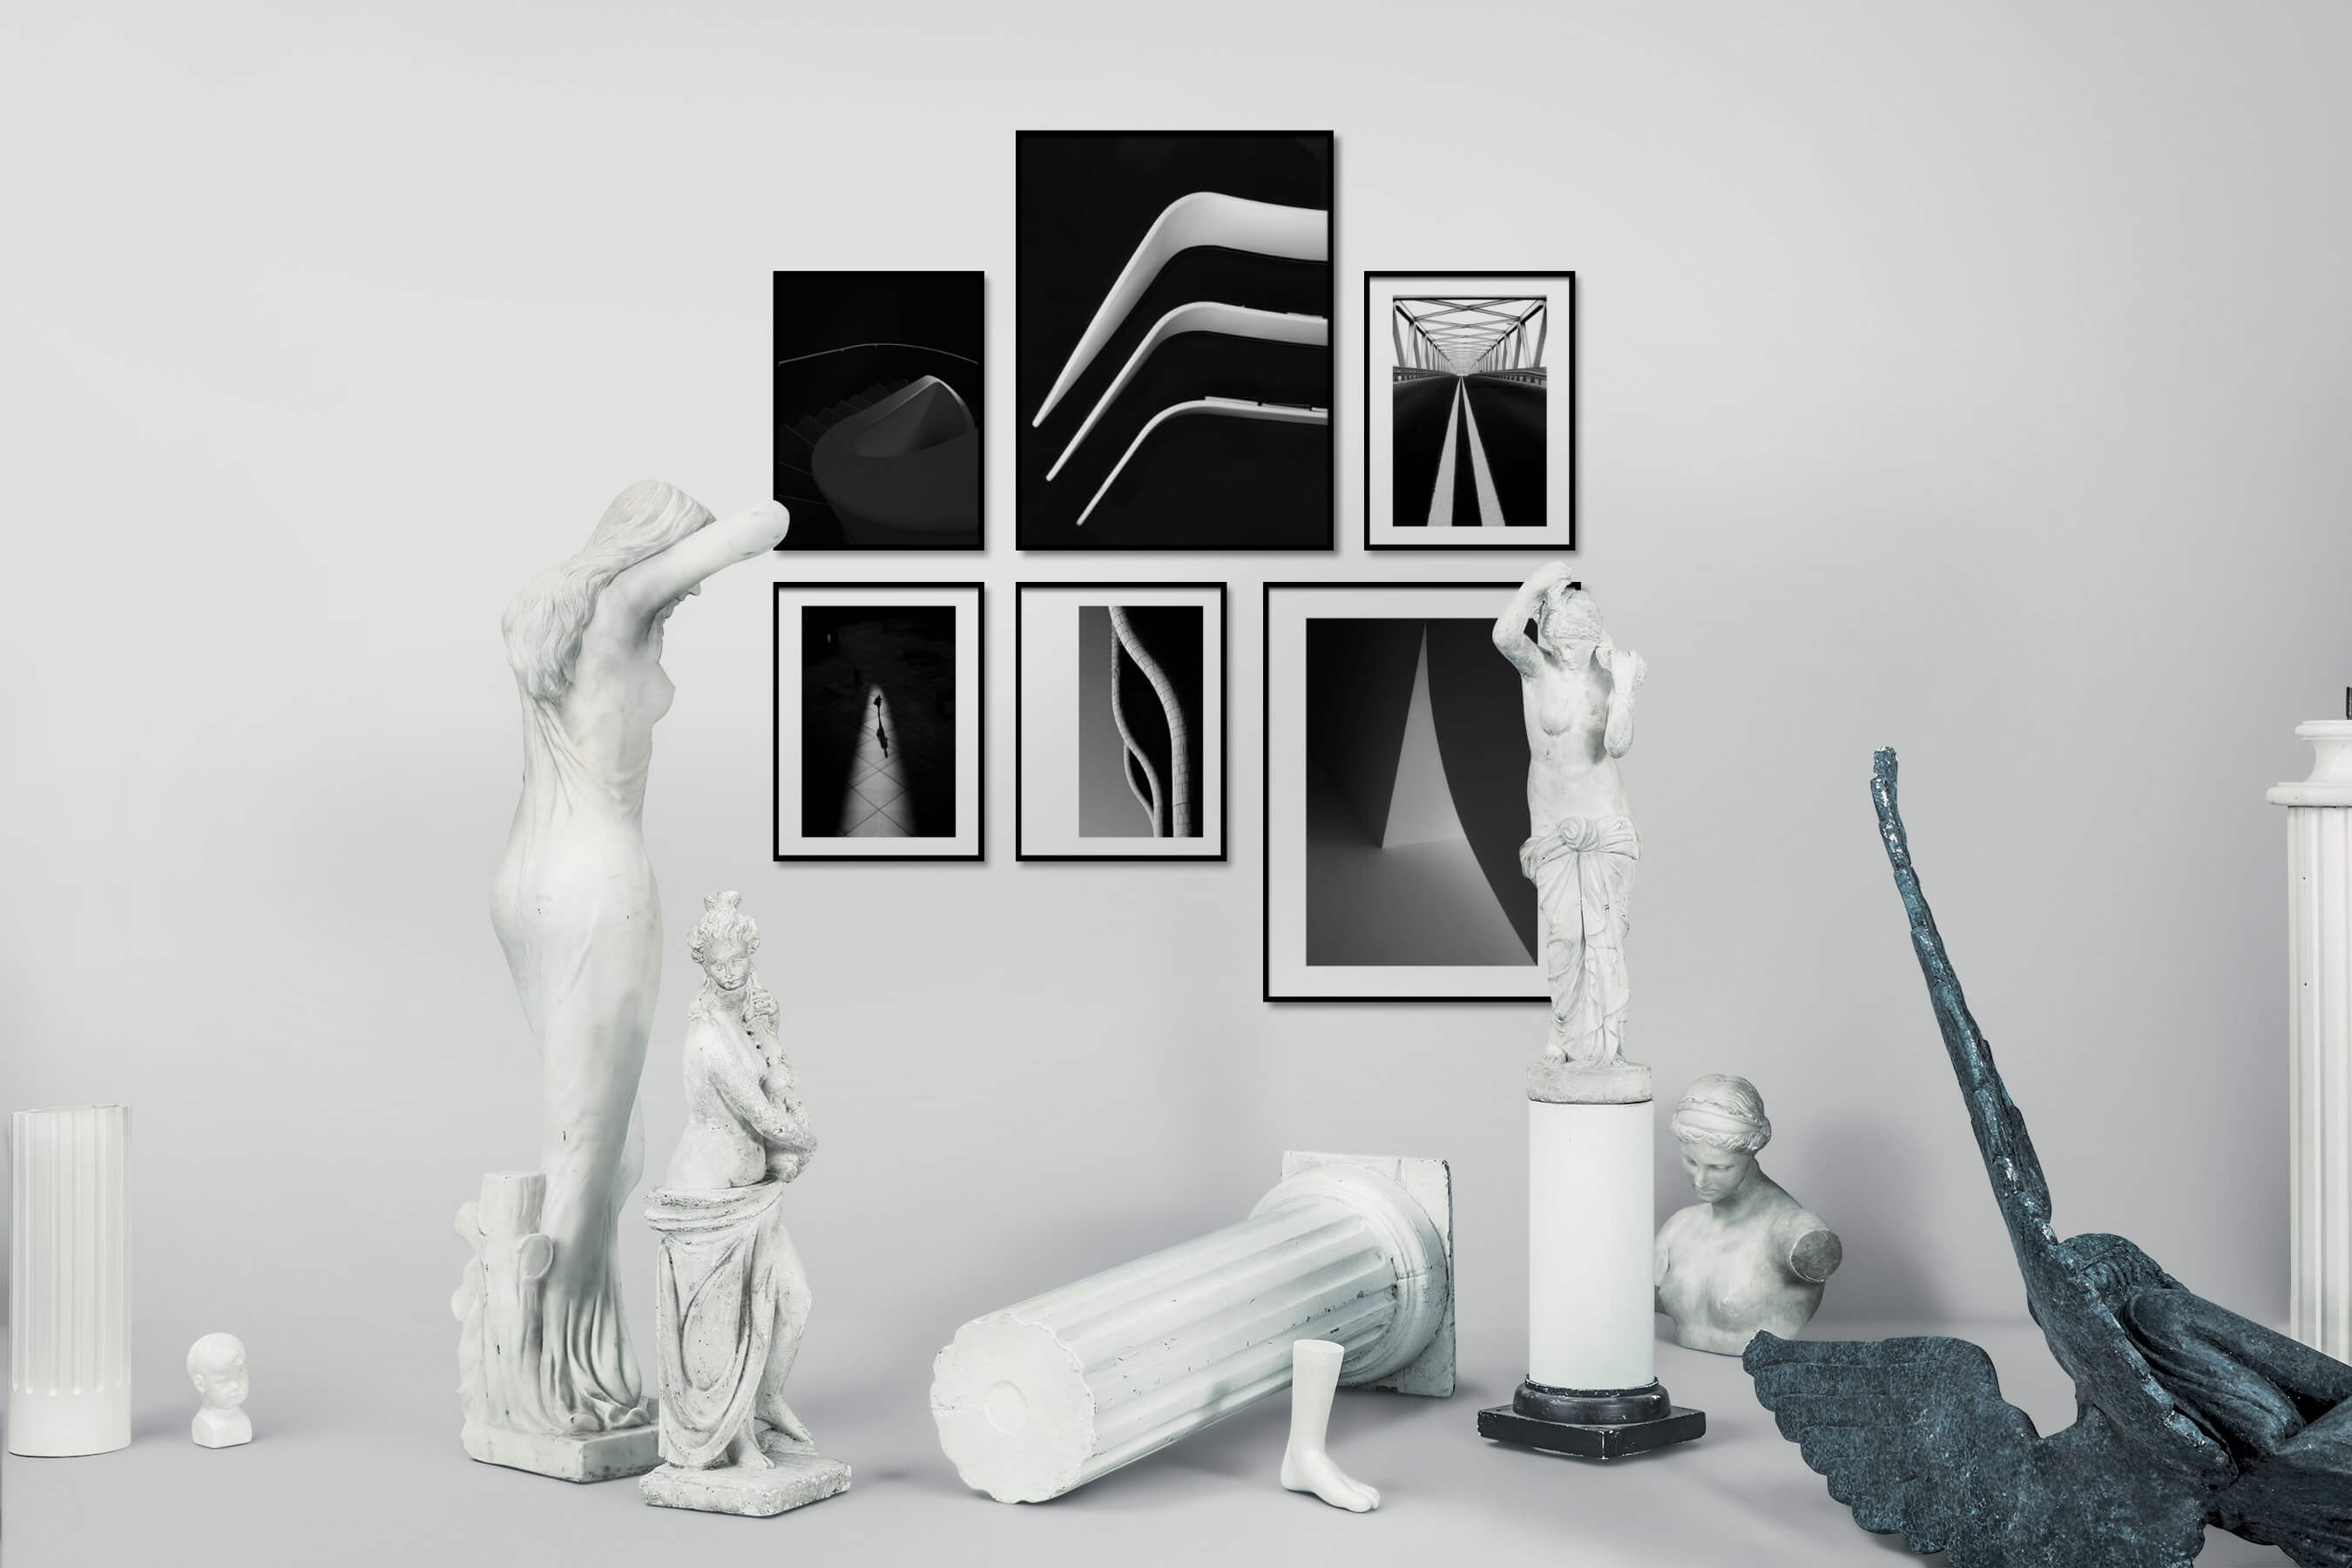 Gallery wall idea with six framed pictures arranged on a wall depicting Black & White, Dark Tones, For the Minimalist, For the Moderate, and City Life